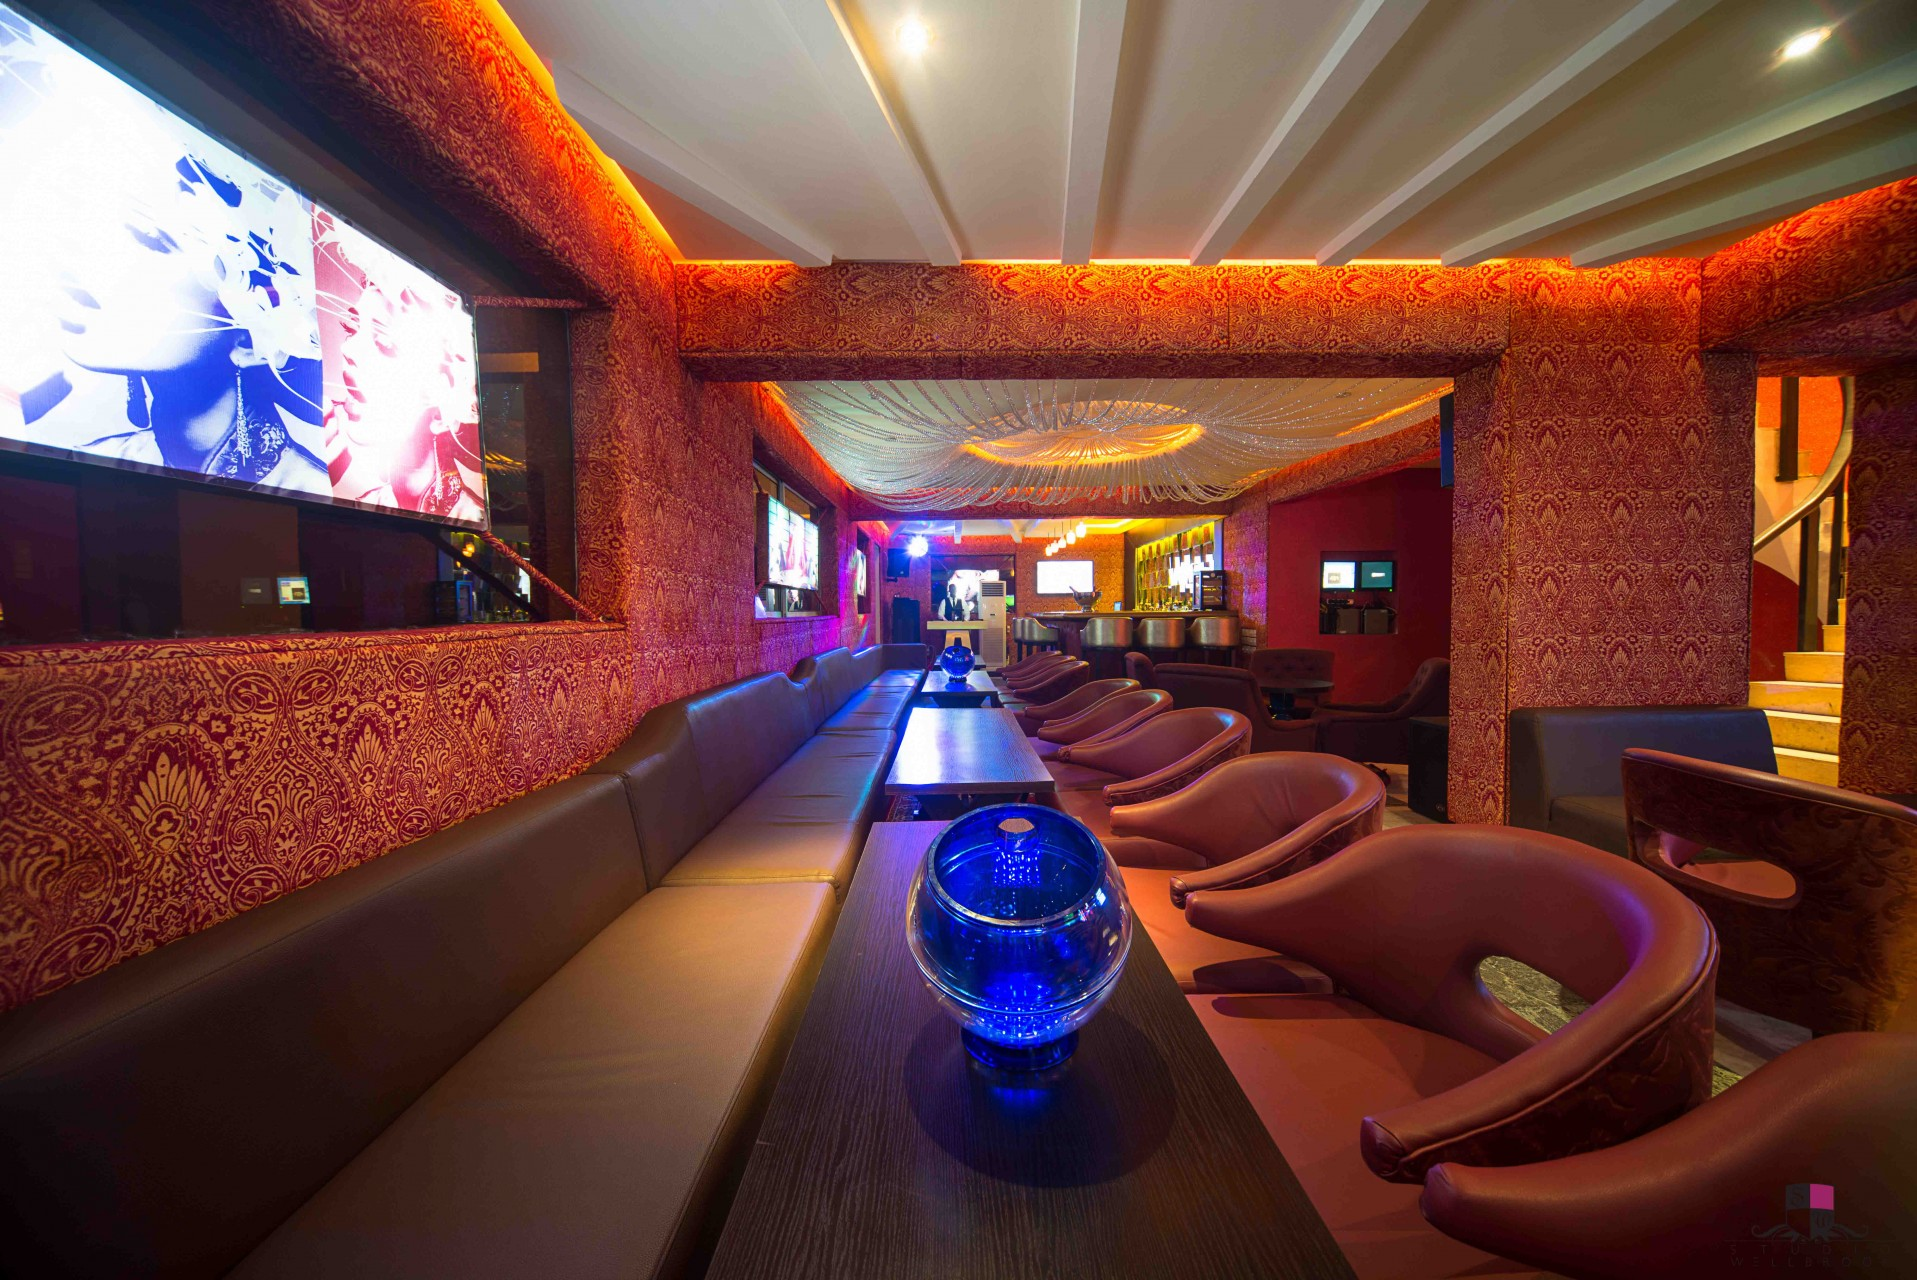 Prive bar and lounge